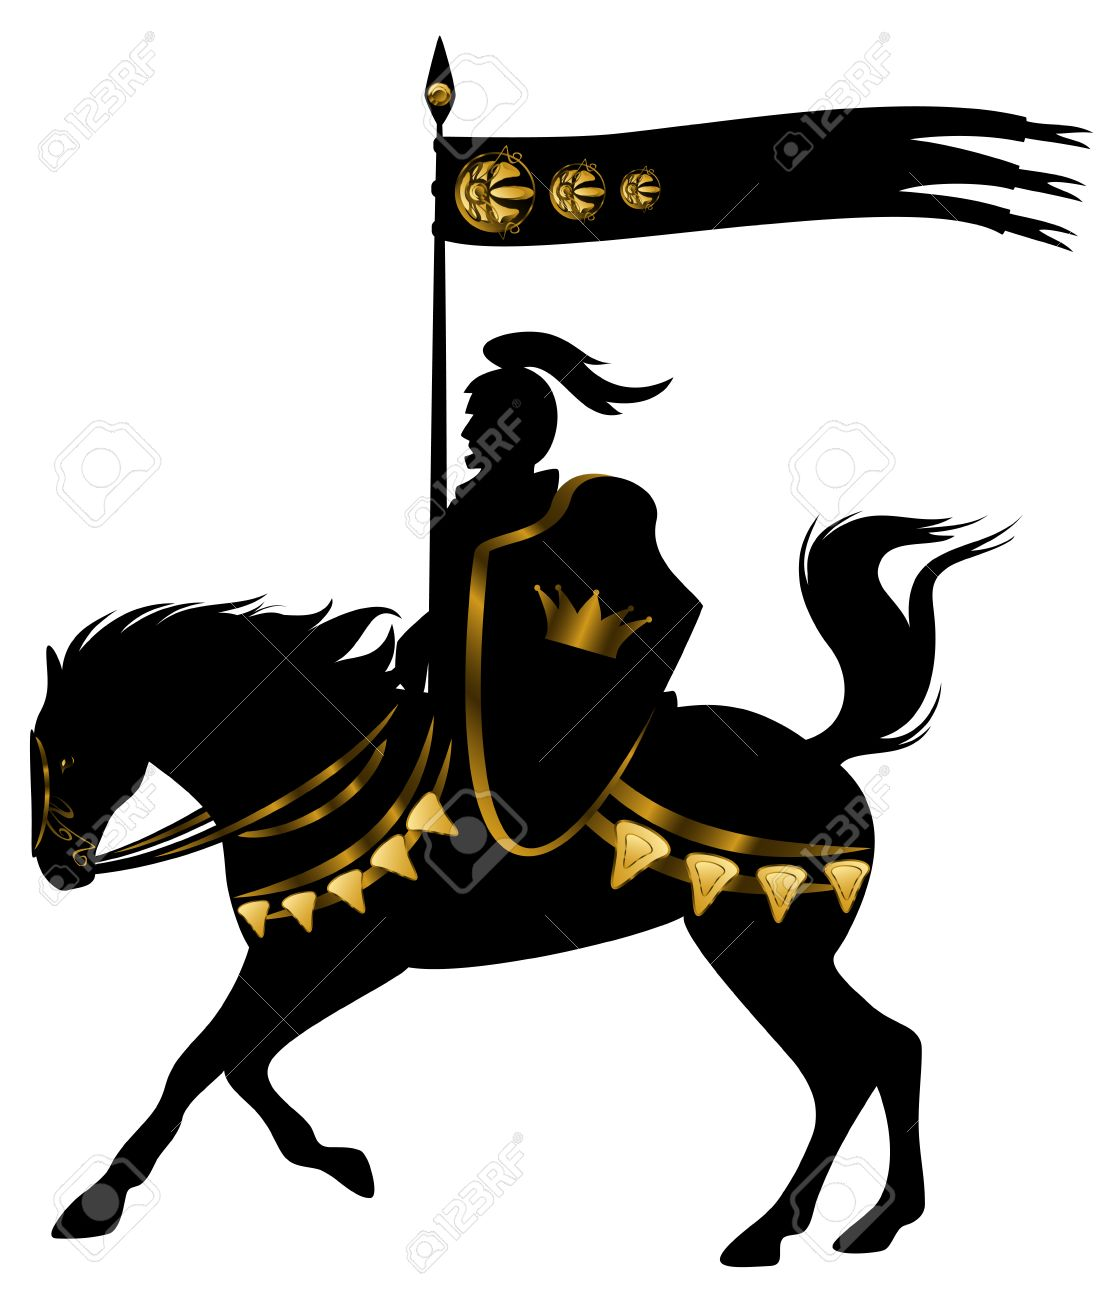 knight in black and gold armor with a spear standard riding a horse with golden decor - 30543050